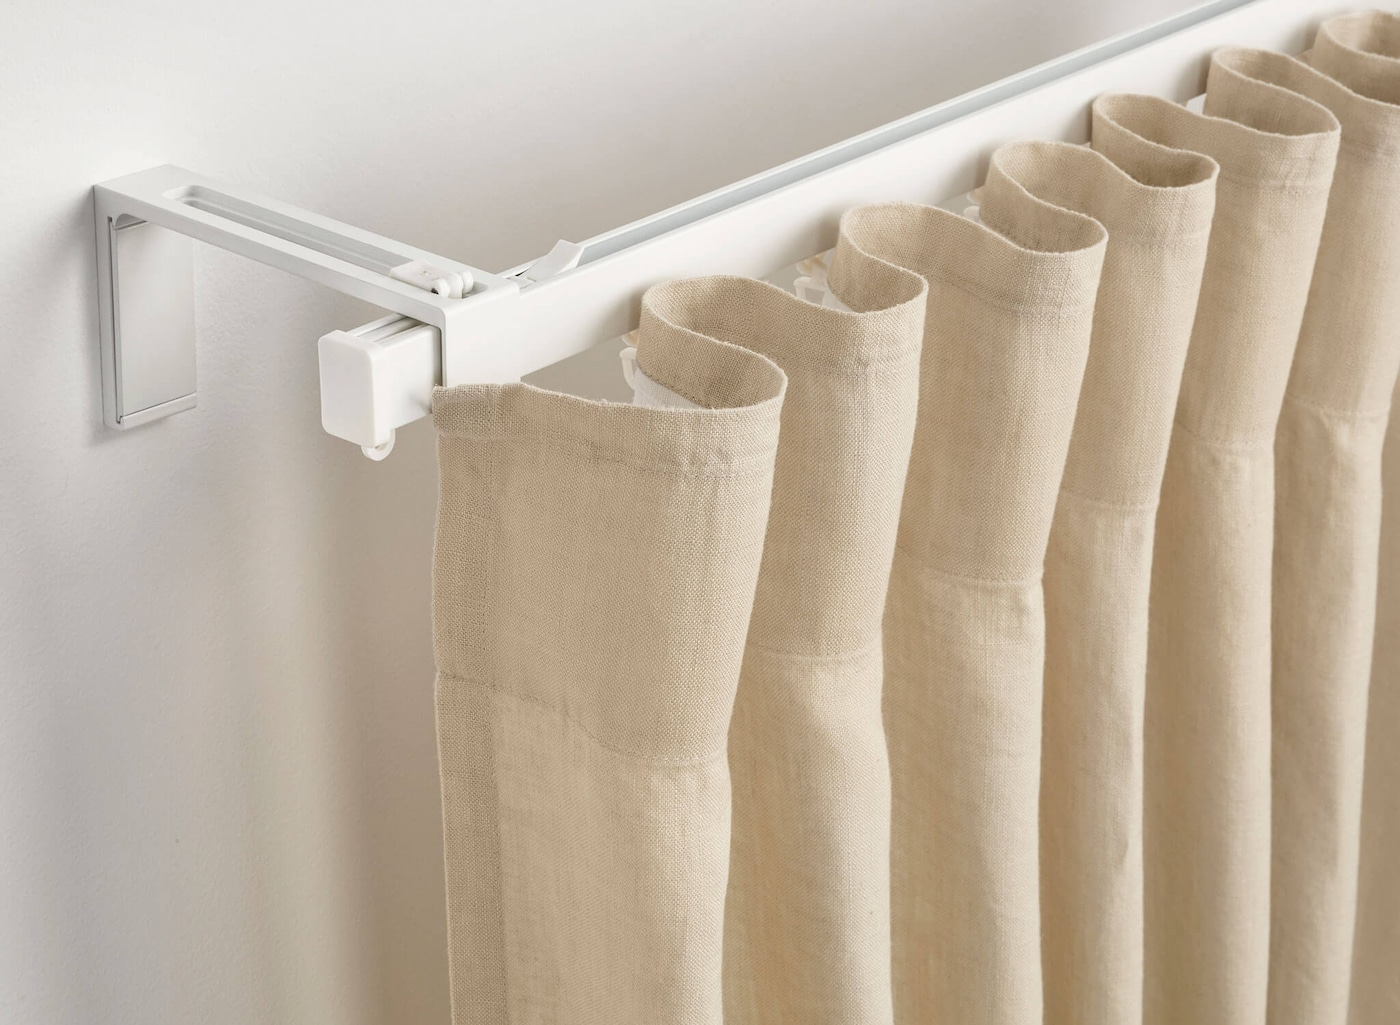 Close-up of a curtain rod with gray curtains hanging from it.